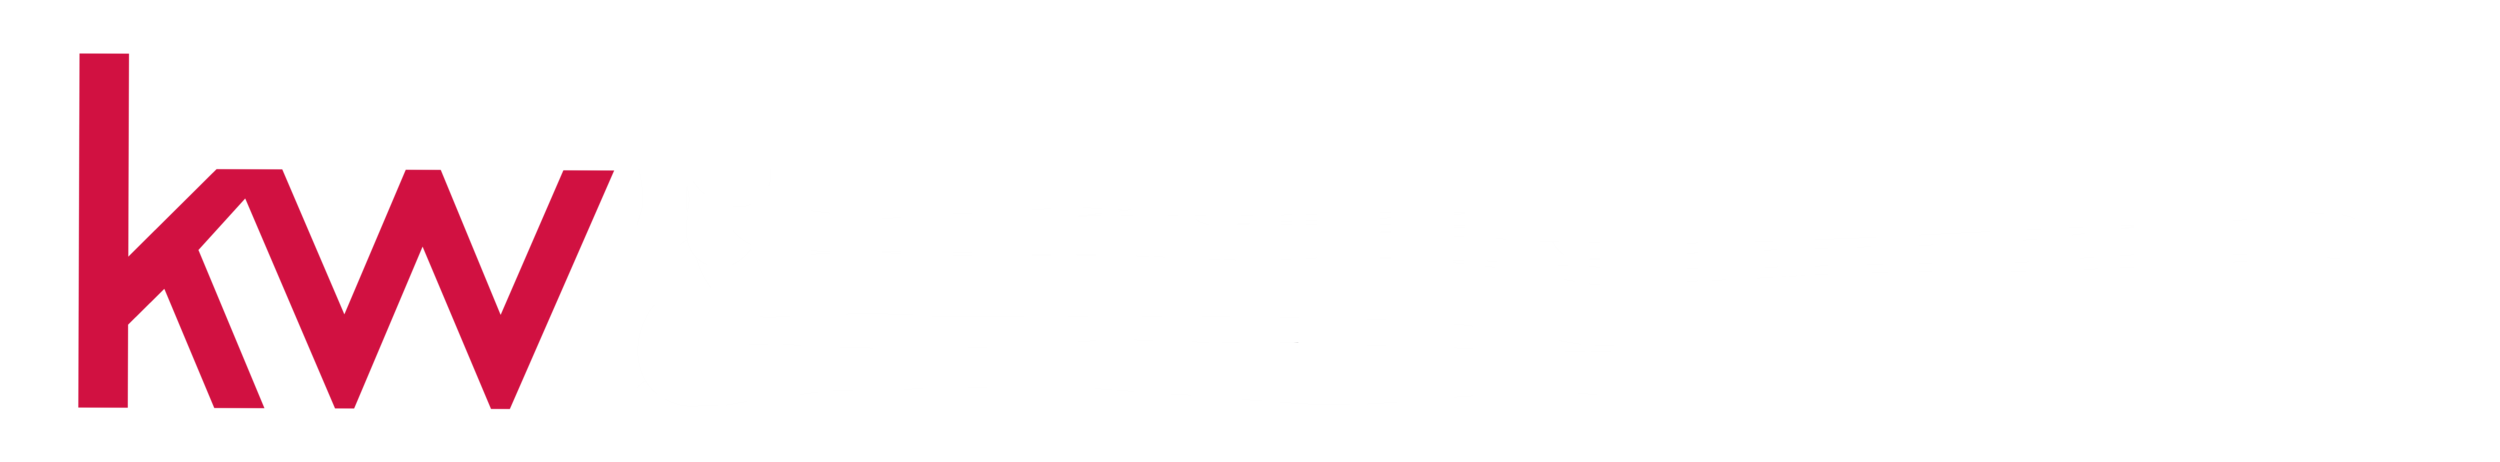 KellerWilliams_Realty_Clear_REDKW.png